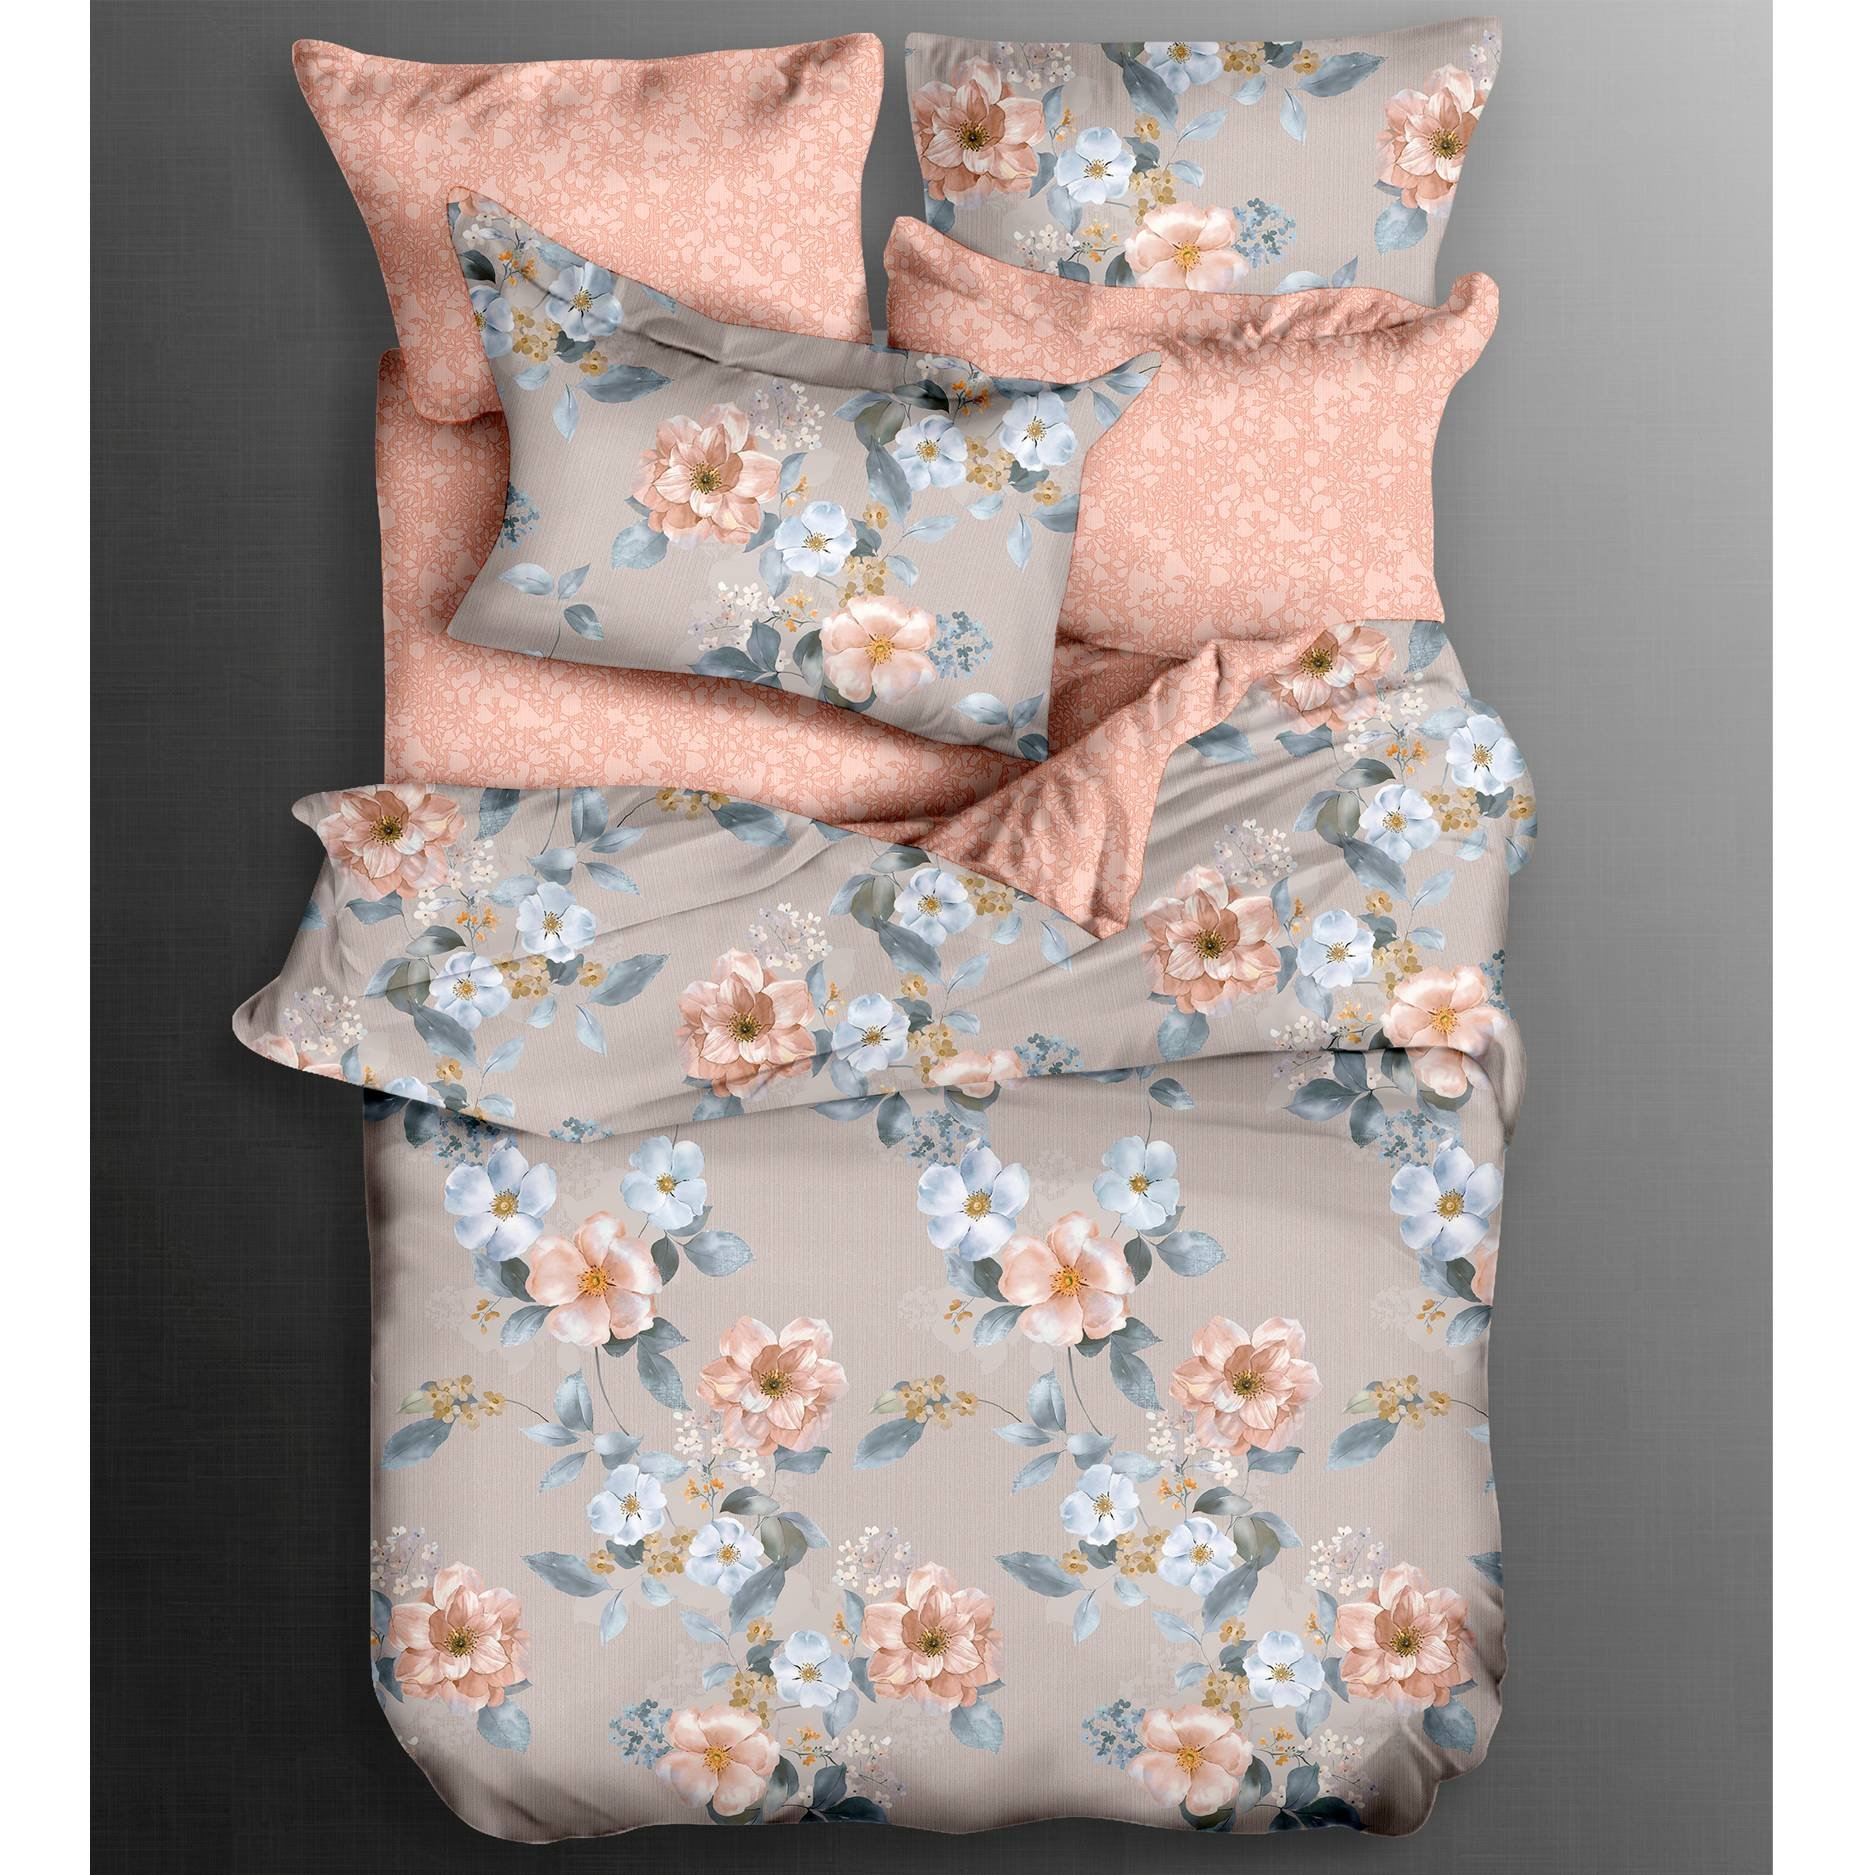 Daphne Pure Cotton Floral Patterns Sheet Set 100% Cotton Printed image6